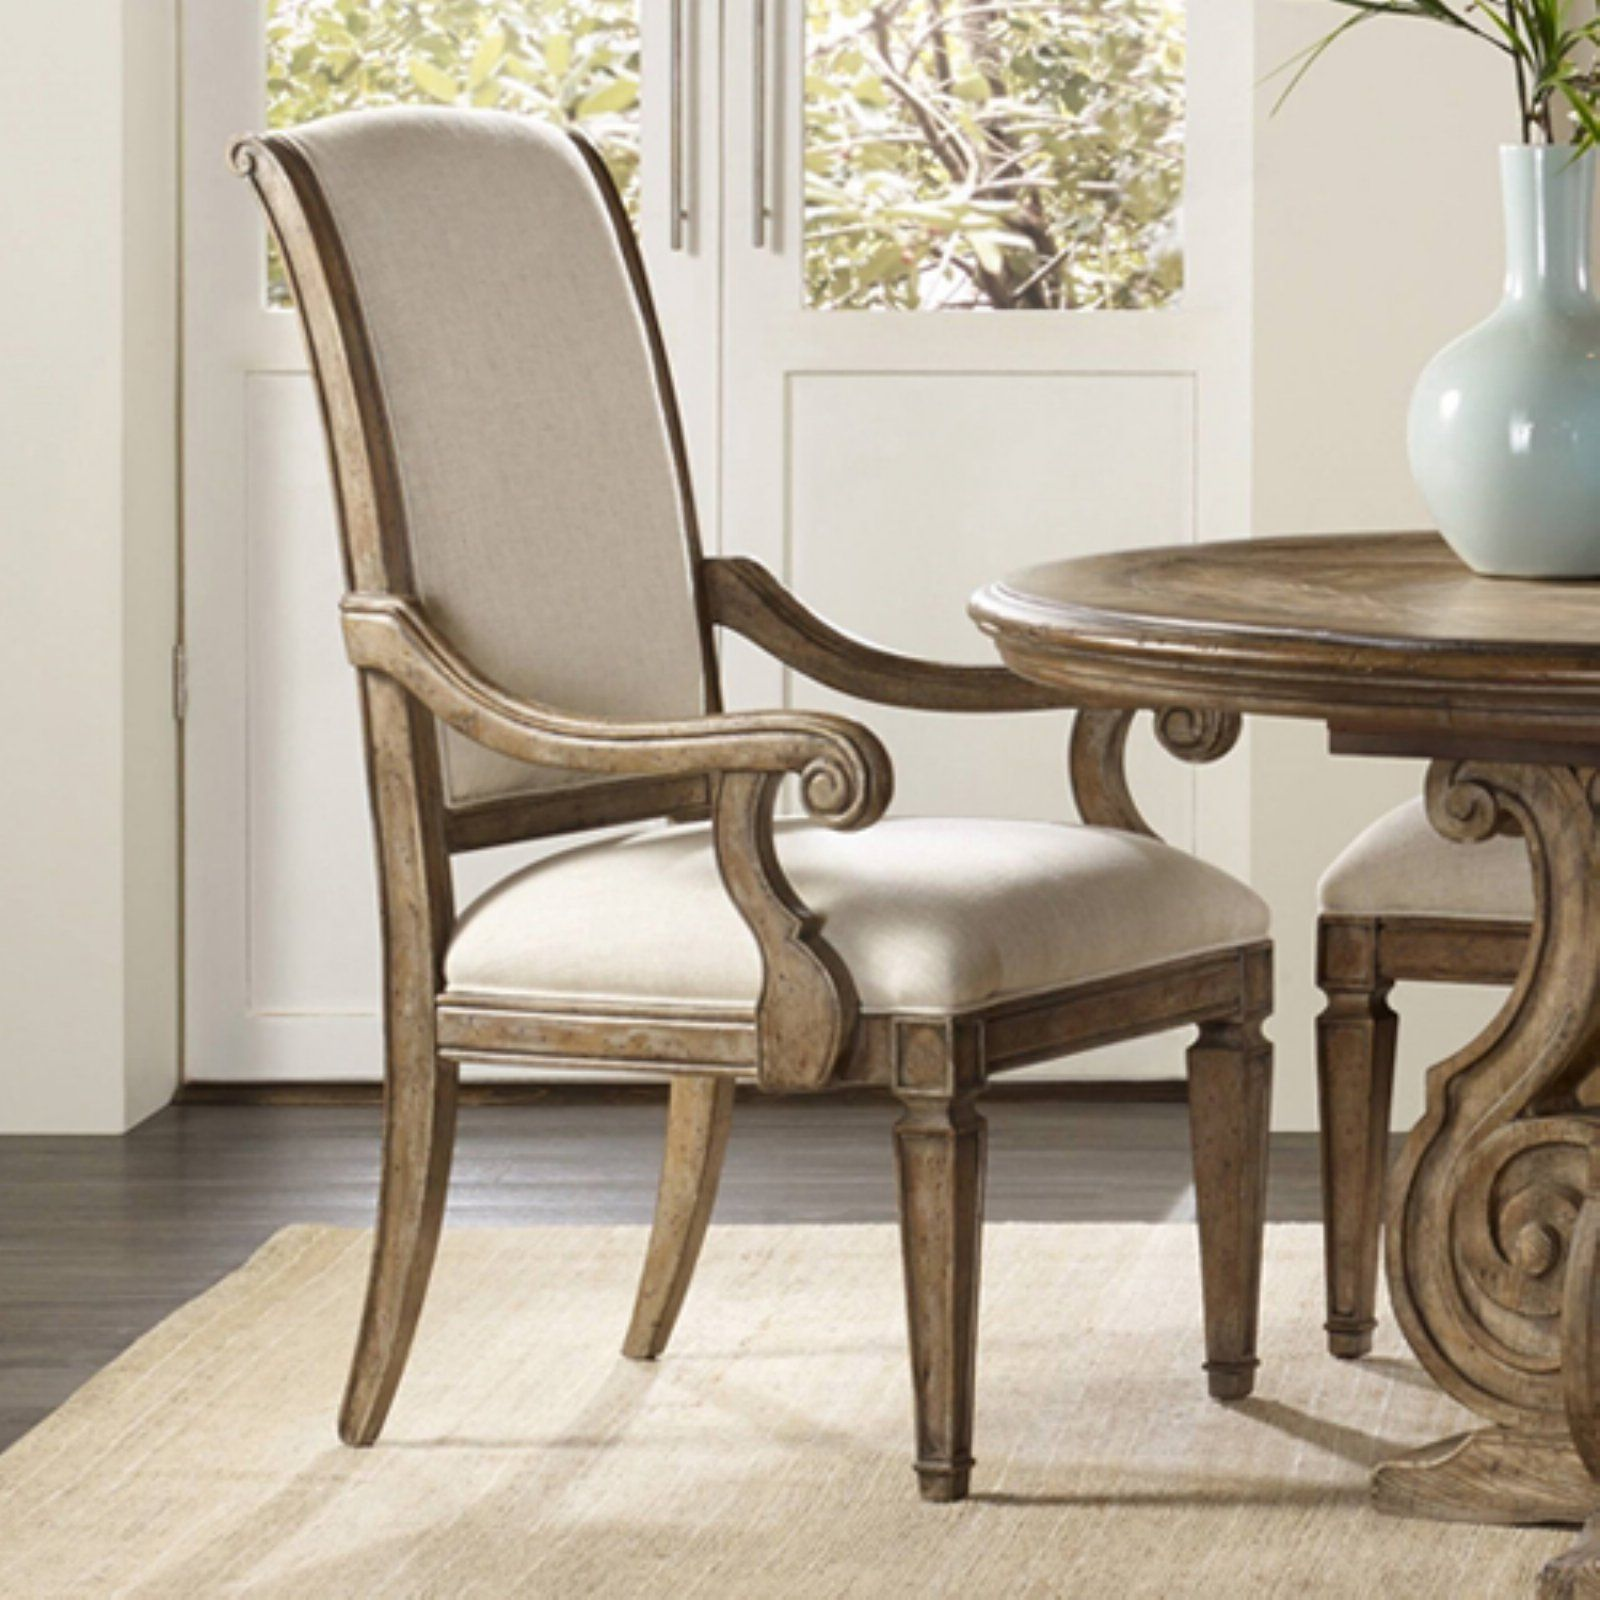 Hooker Furniture Solana Upholstered Dining Arm Chair Natural